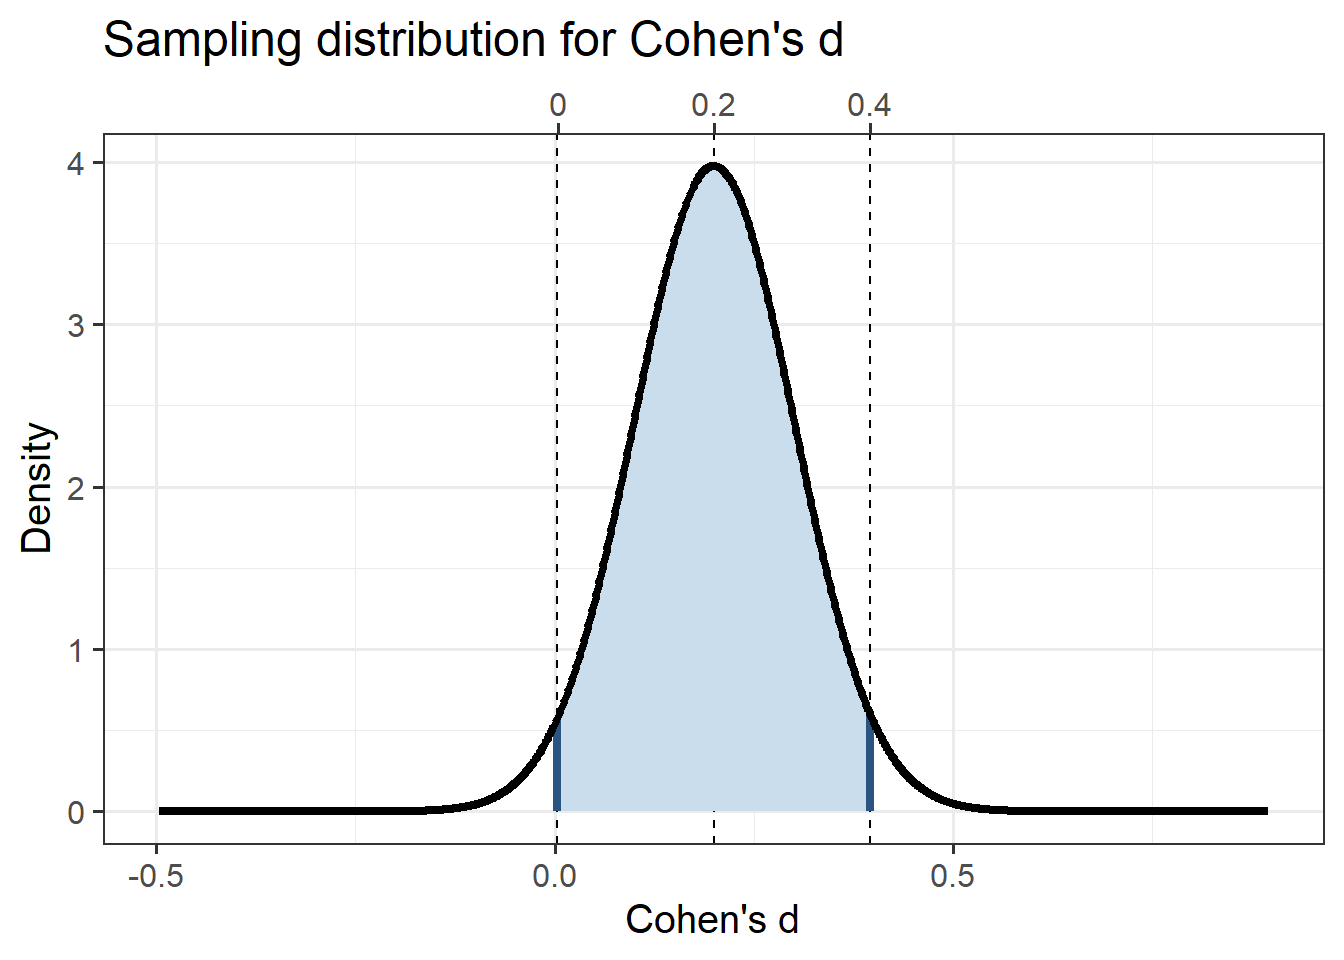 Cohen's d's sampling distribution for a small population effect size (d = 0.2) and for a 2-cell design with 200 participants per group.